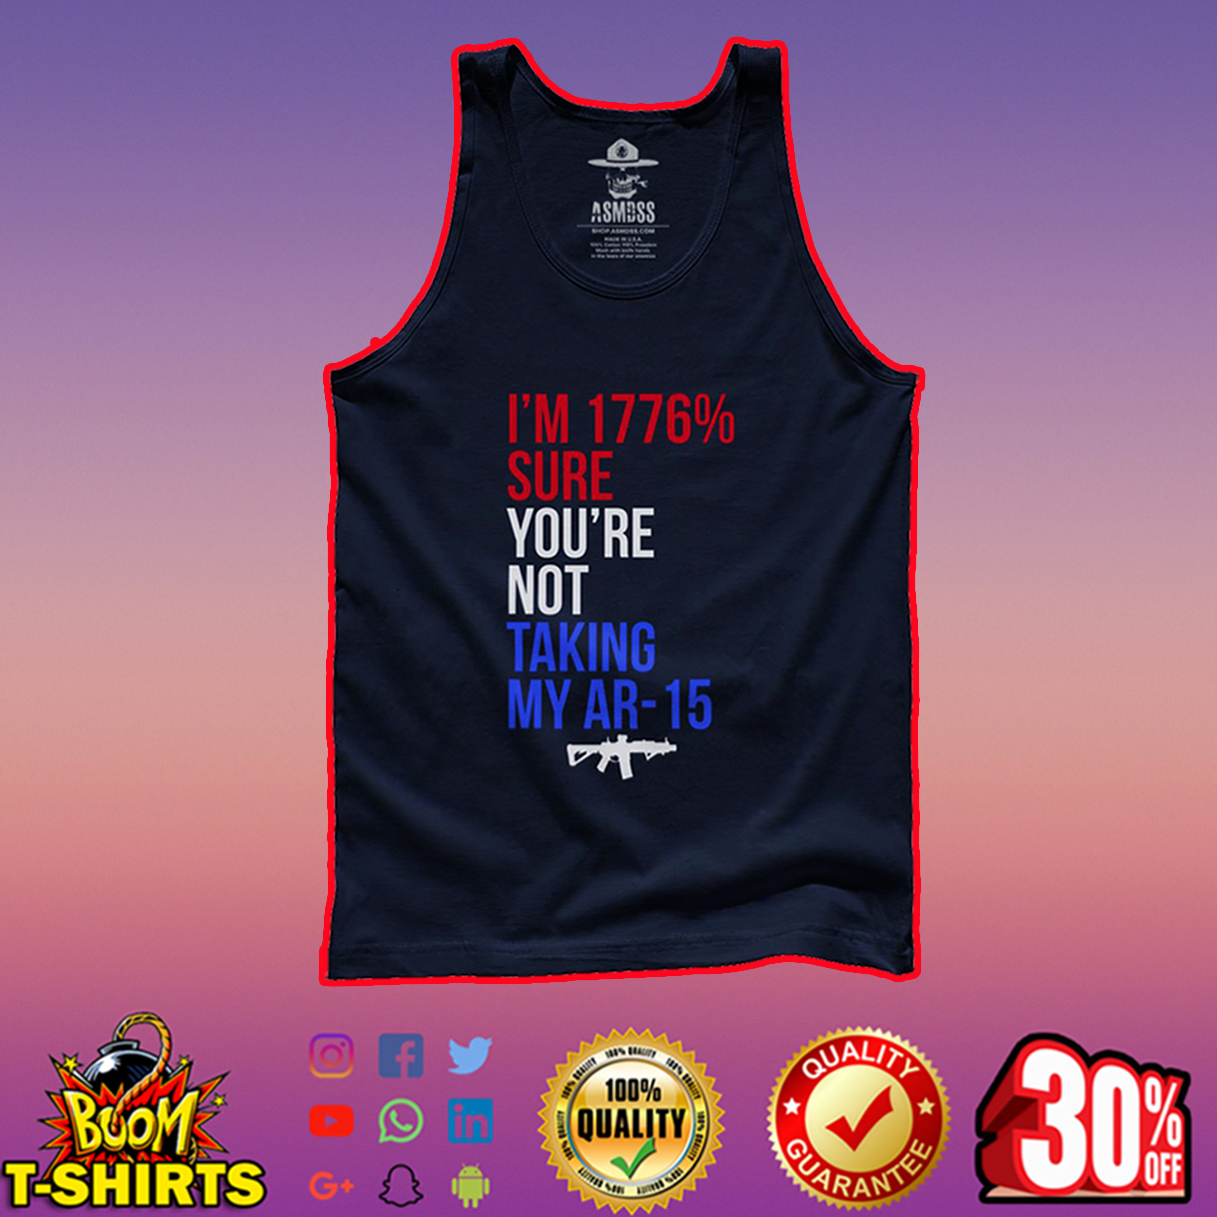 I'm 1776% Sure You're Not Taking My Ar-15 tank top